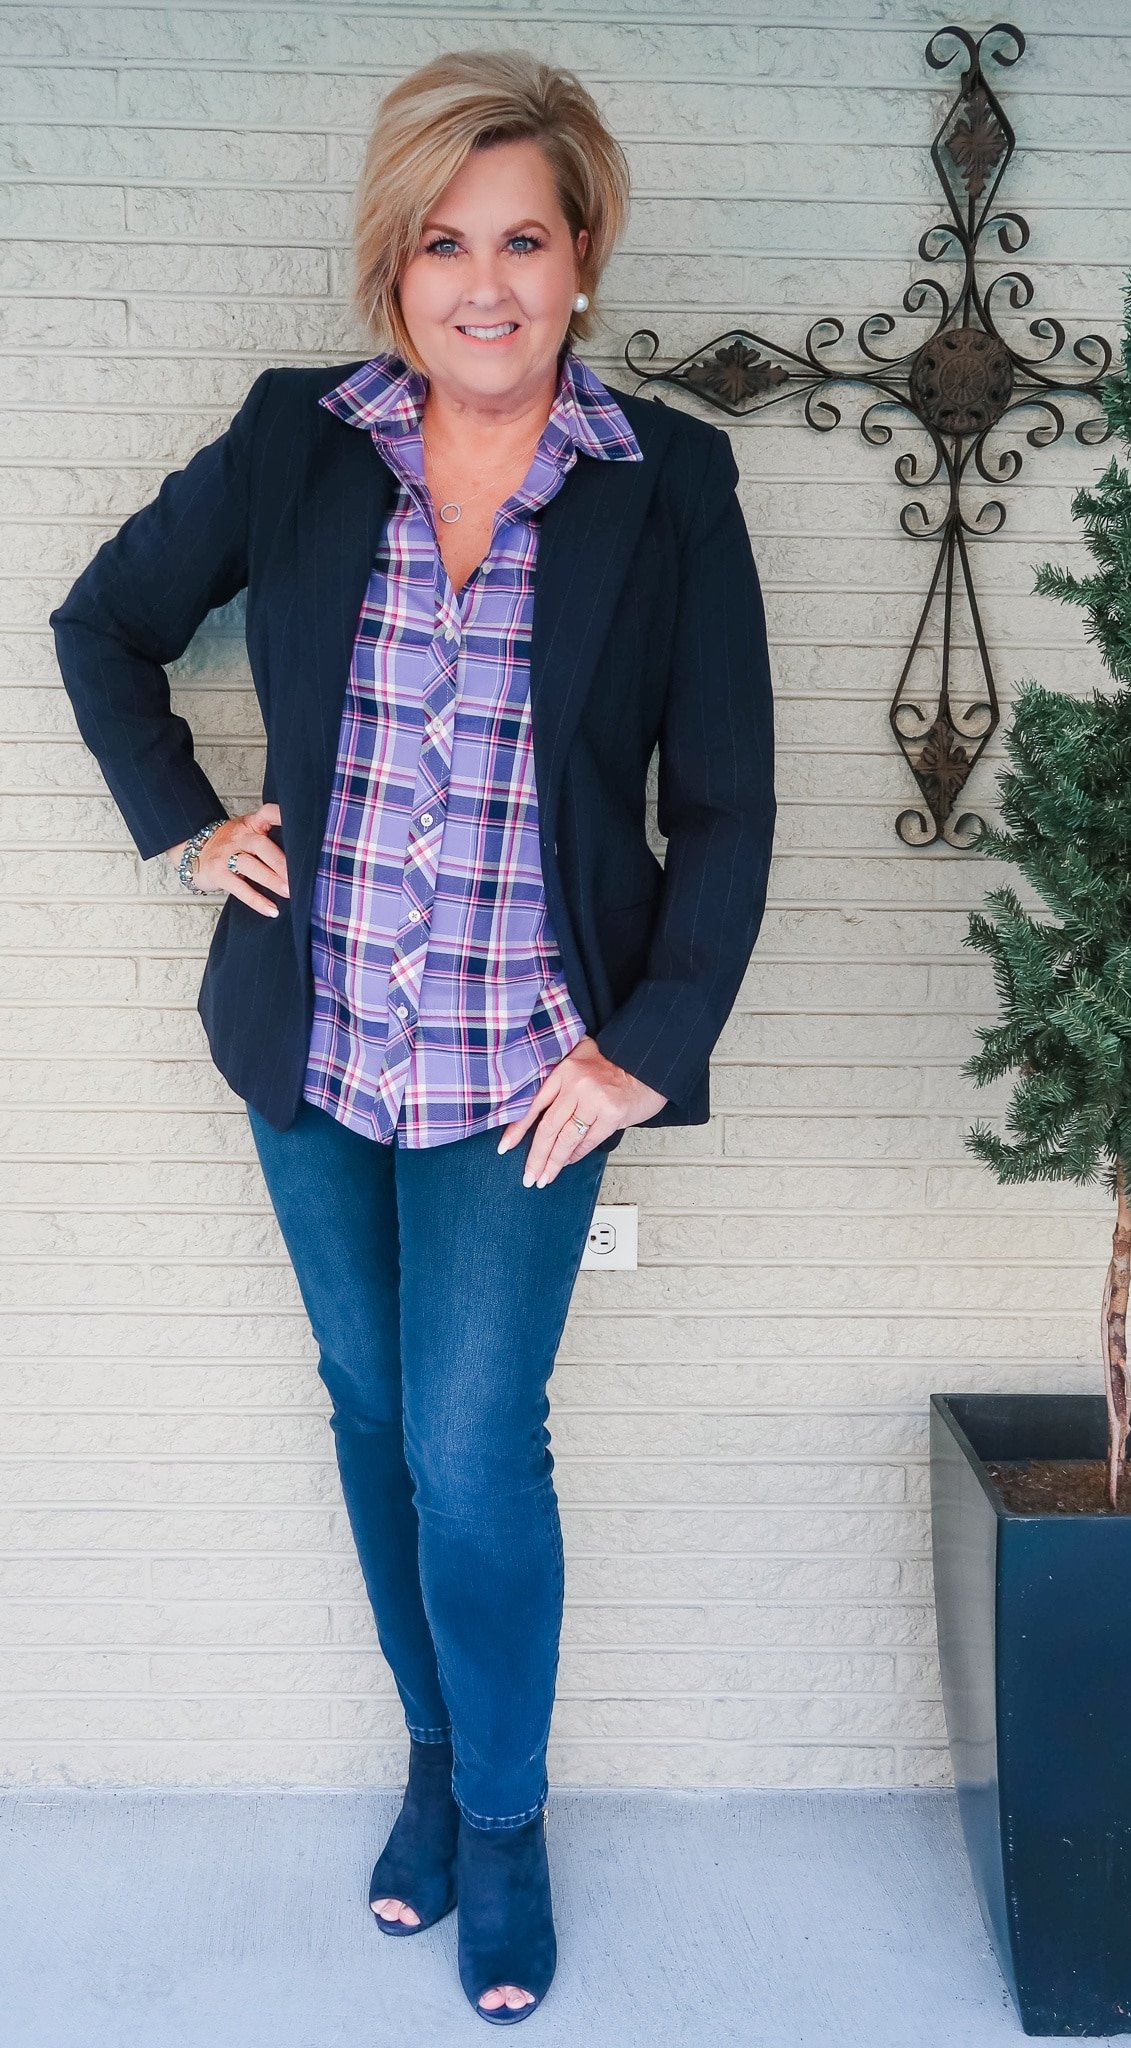 Plaid shirt and Jeans